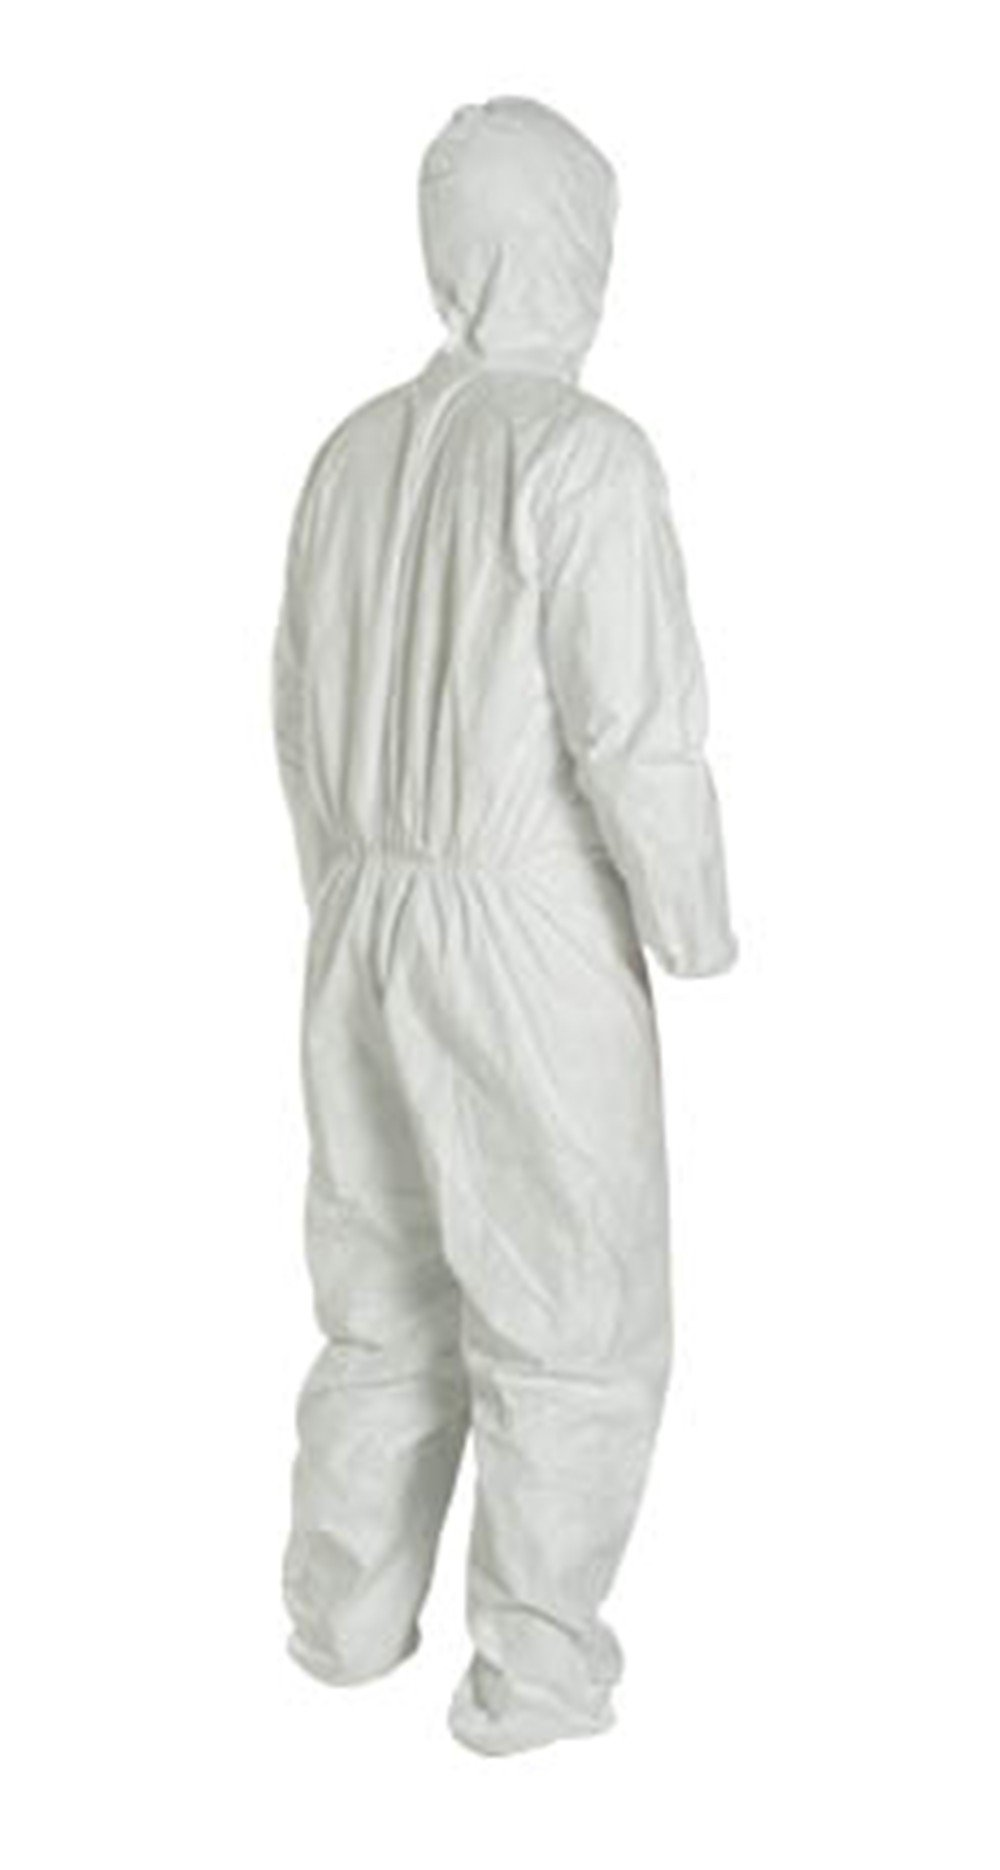 2XL Tyvek Coverall W/ Hood, Zipper, Elastic Wrist & Ankle (2XL-10 Suits) TY127S WH - 2XL - 10 by Tyvek (Image #3)